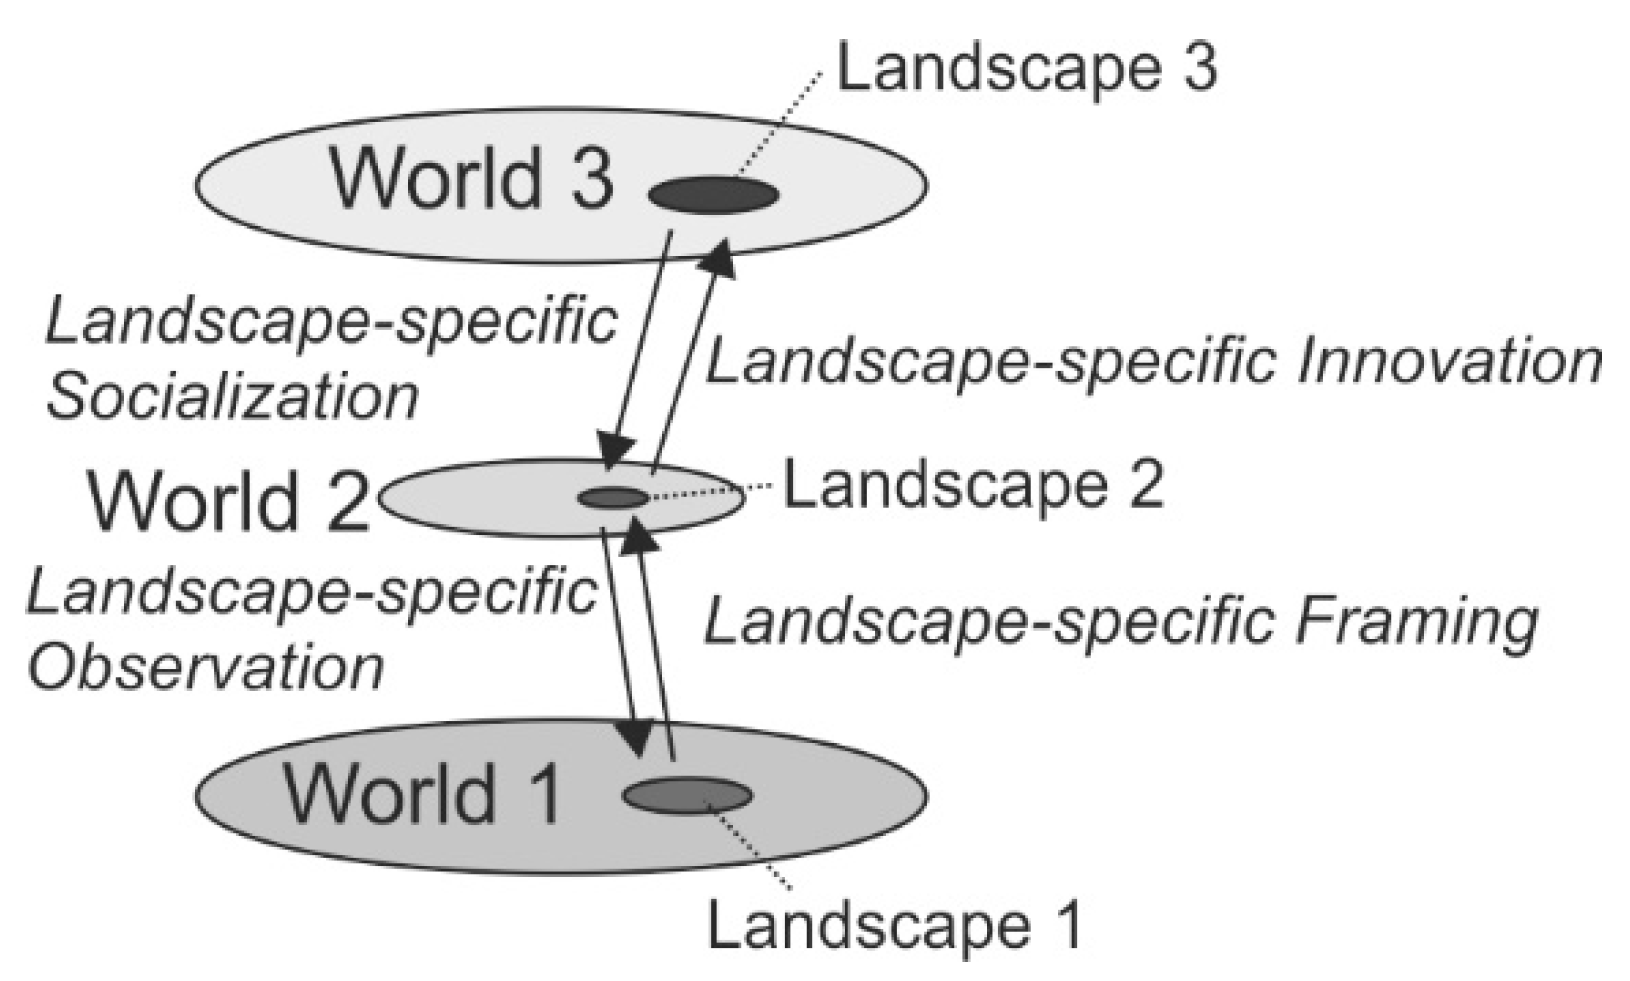 Sustainability Free Full Text Landscape Conflicts A Theoretical Approach Based On The Three Worlds Theory Of Karl Popper And The Conflict Theory Of Ralf Dahrendorf Illustrated By The Example Of The Energy